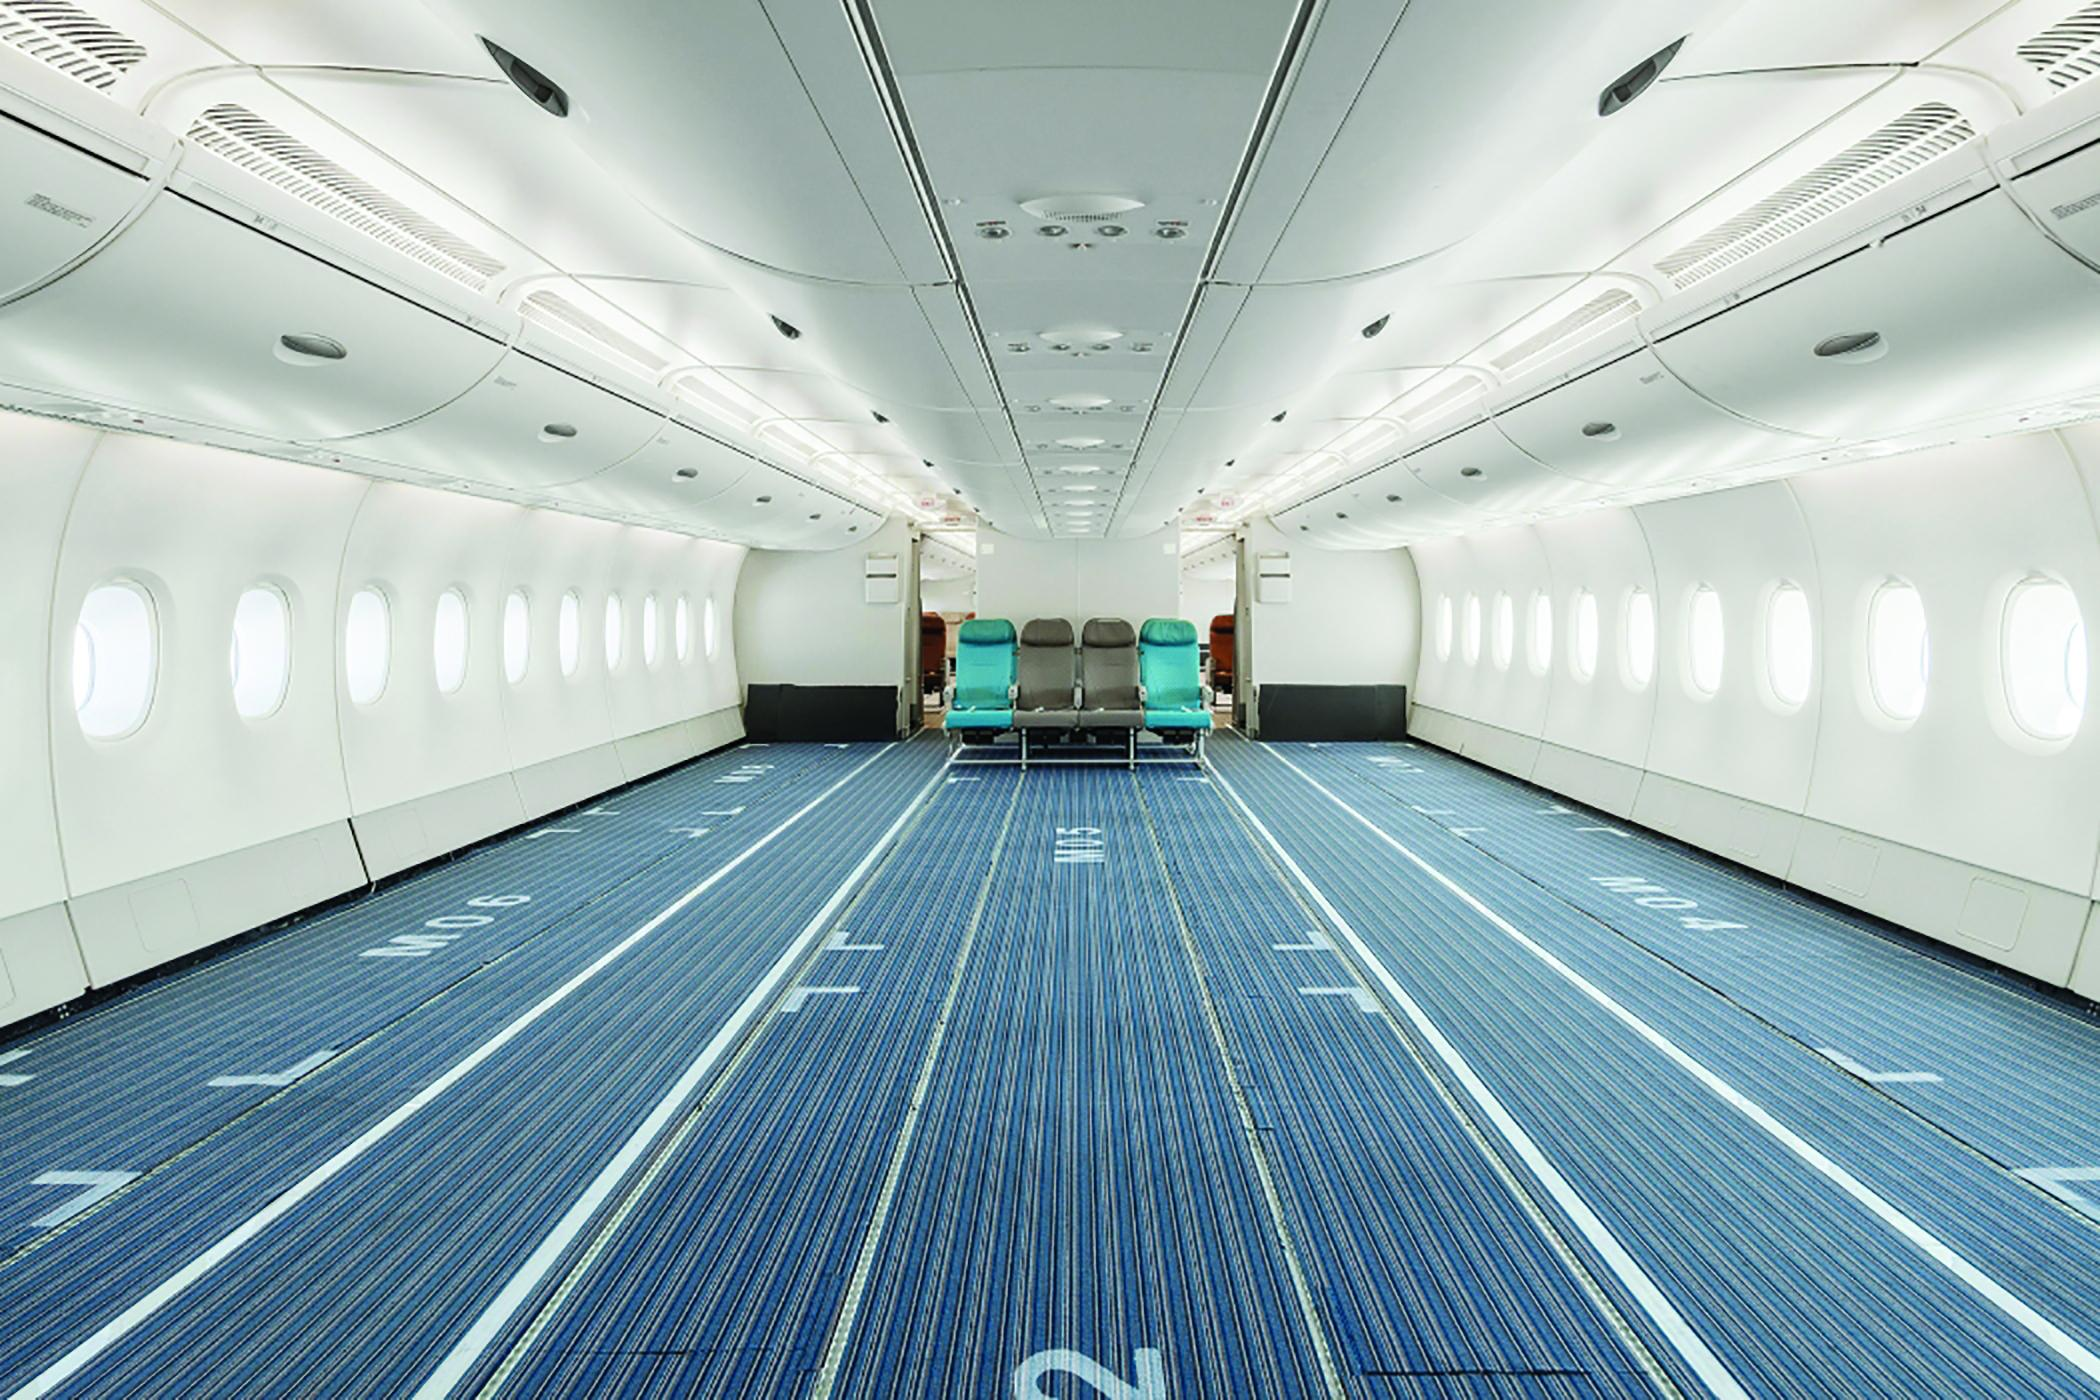 A380 passenger cabin for cargo use